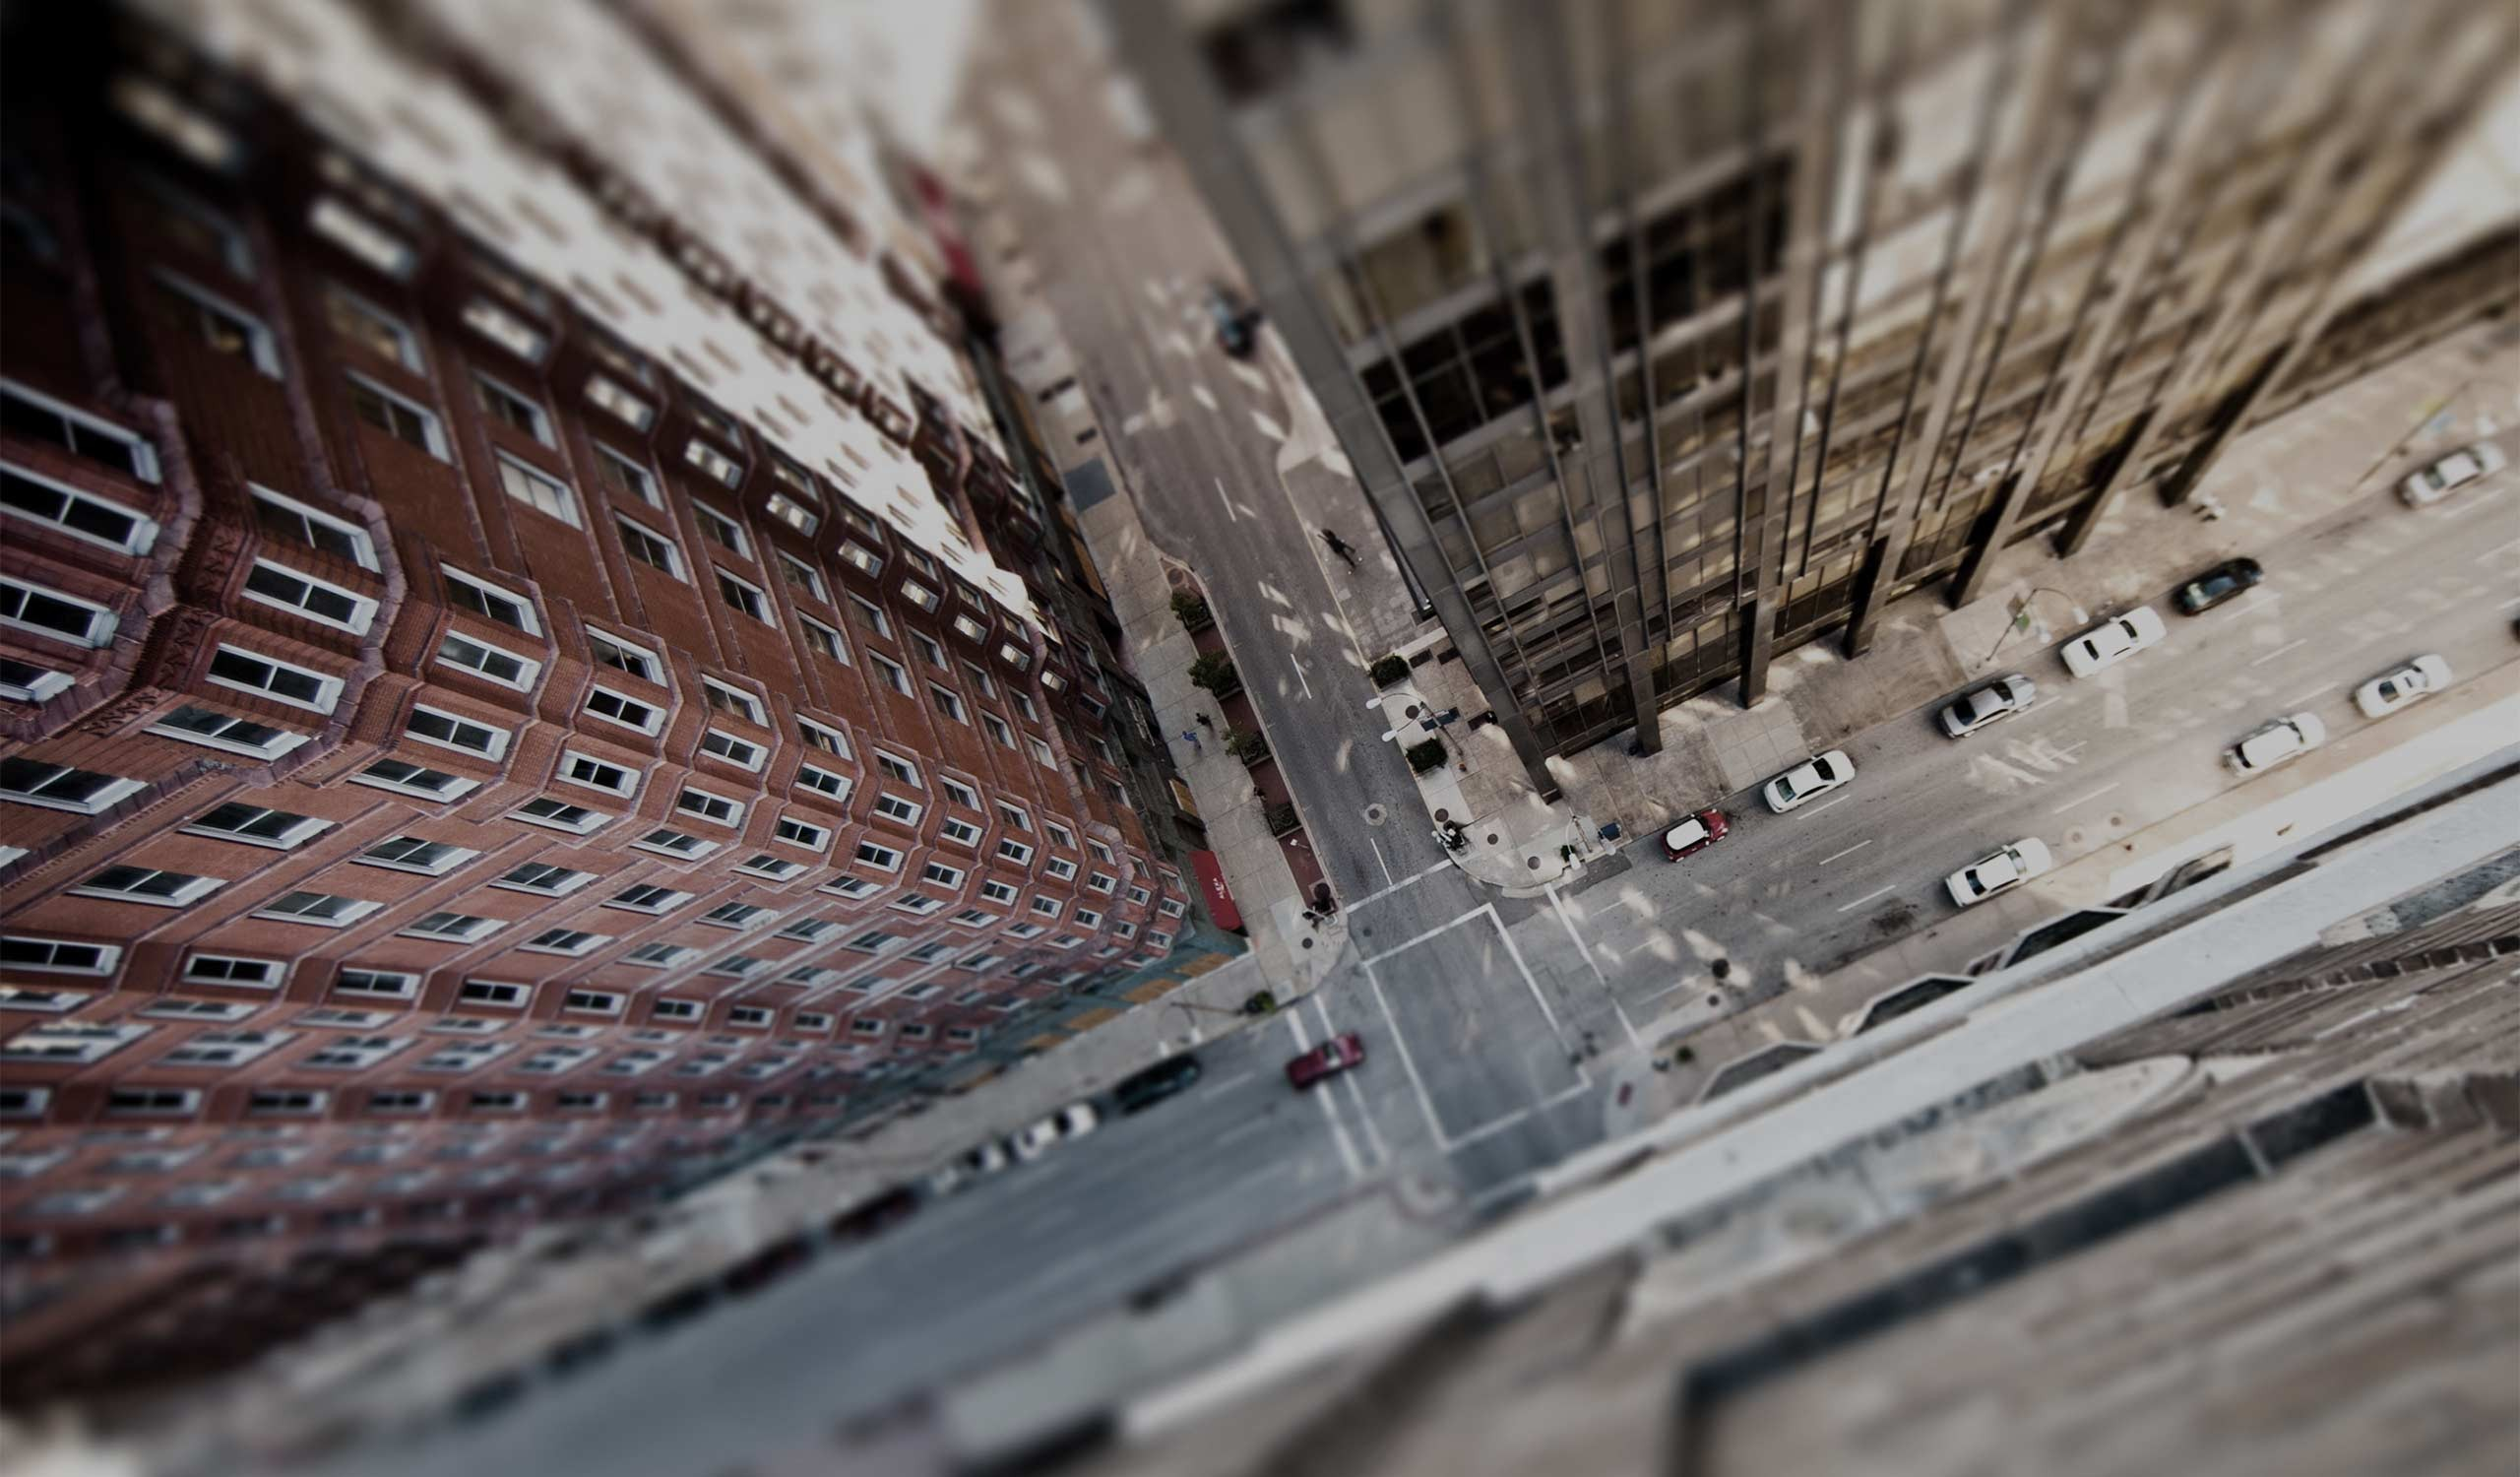 General 2560x1500 tilt shift bird's eye view road street city urban building architecture car heights aerial view New York City USA HDR cityscape